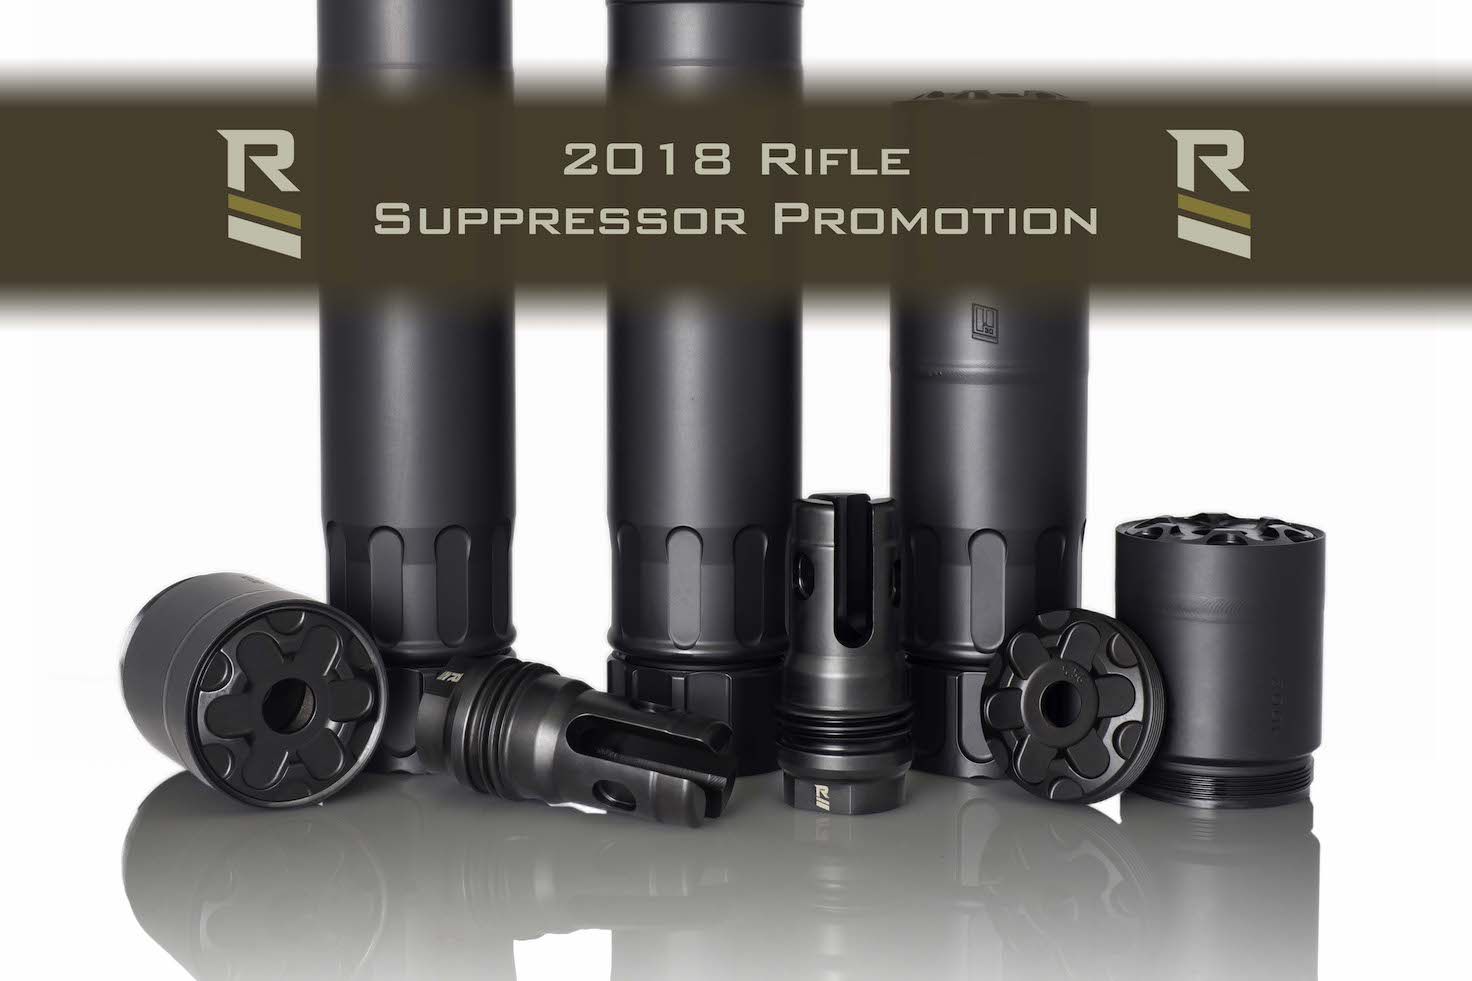 2018-rifle-suppressor-promotion-post.jpg